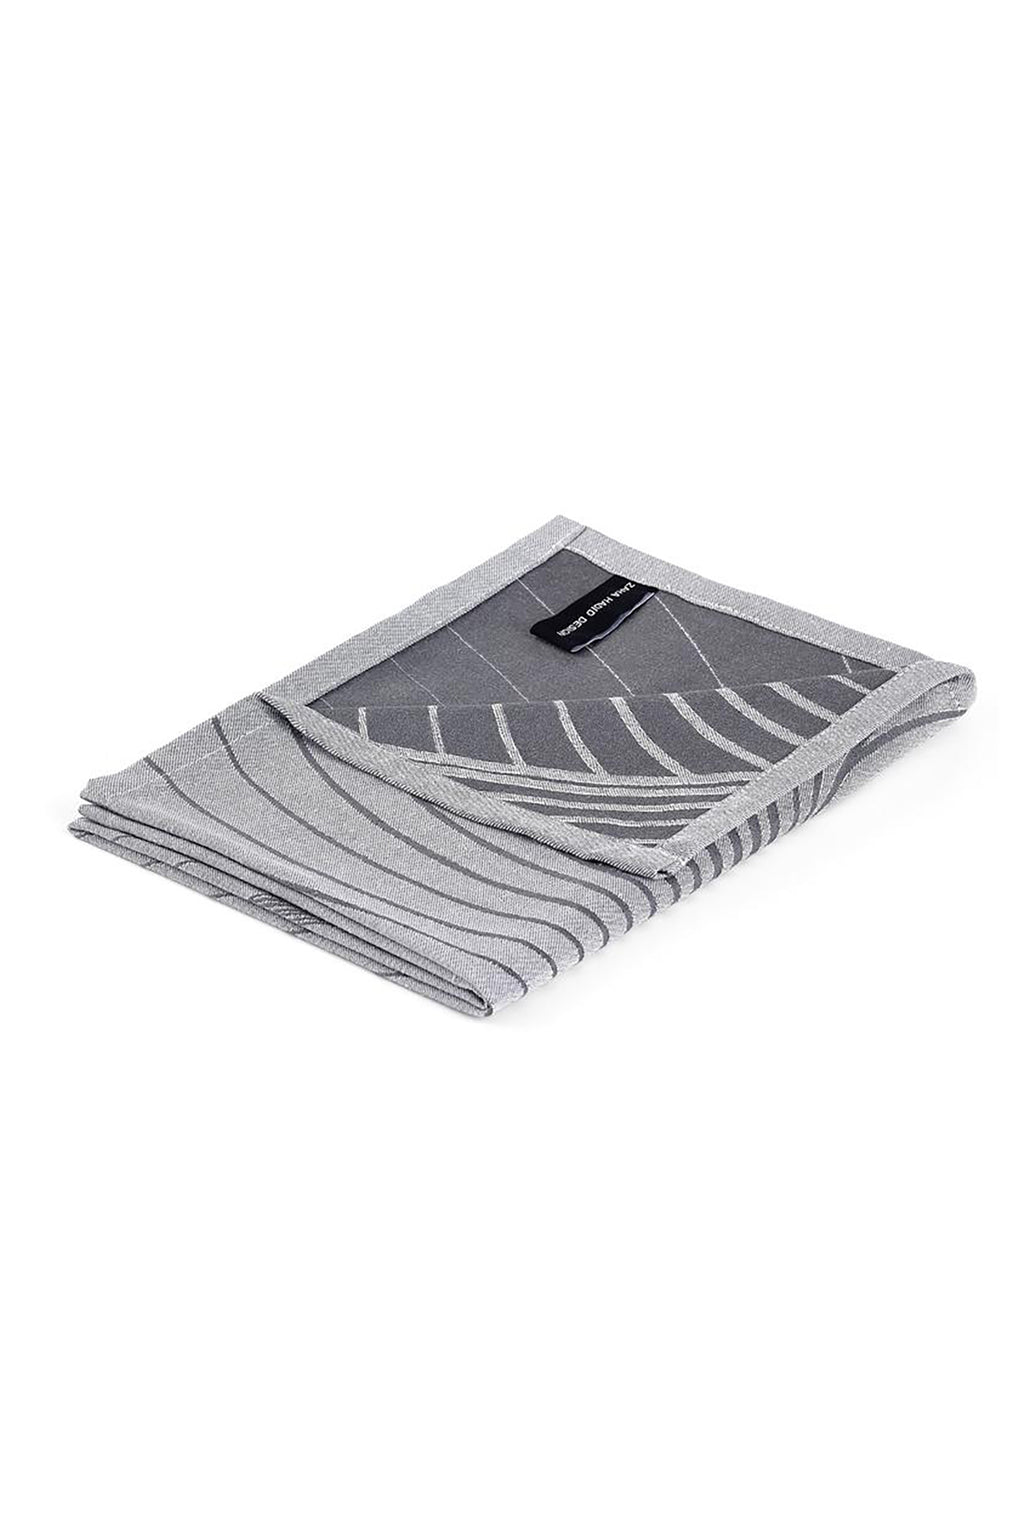 Zaha Hadid Design Contour Tea Towel Grey/White - Set of 2